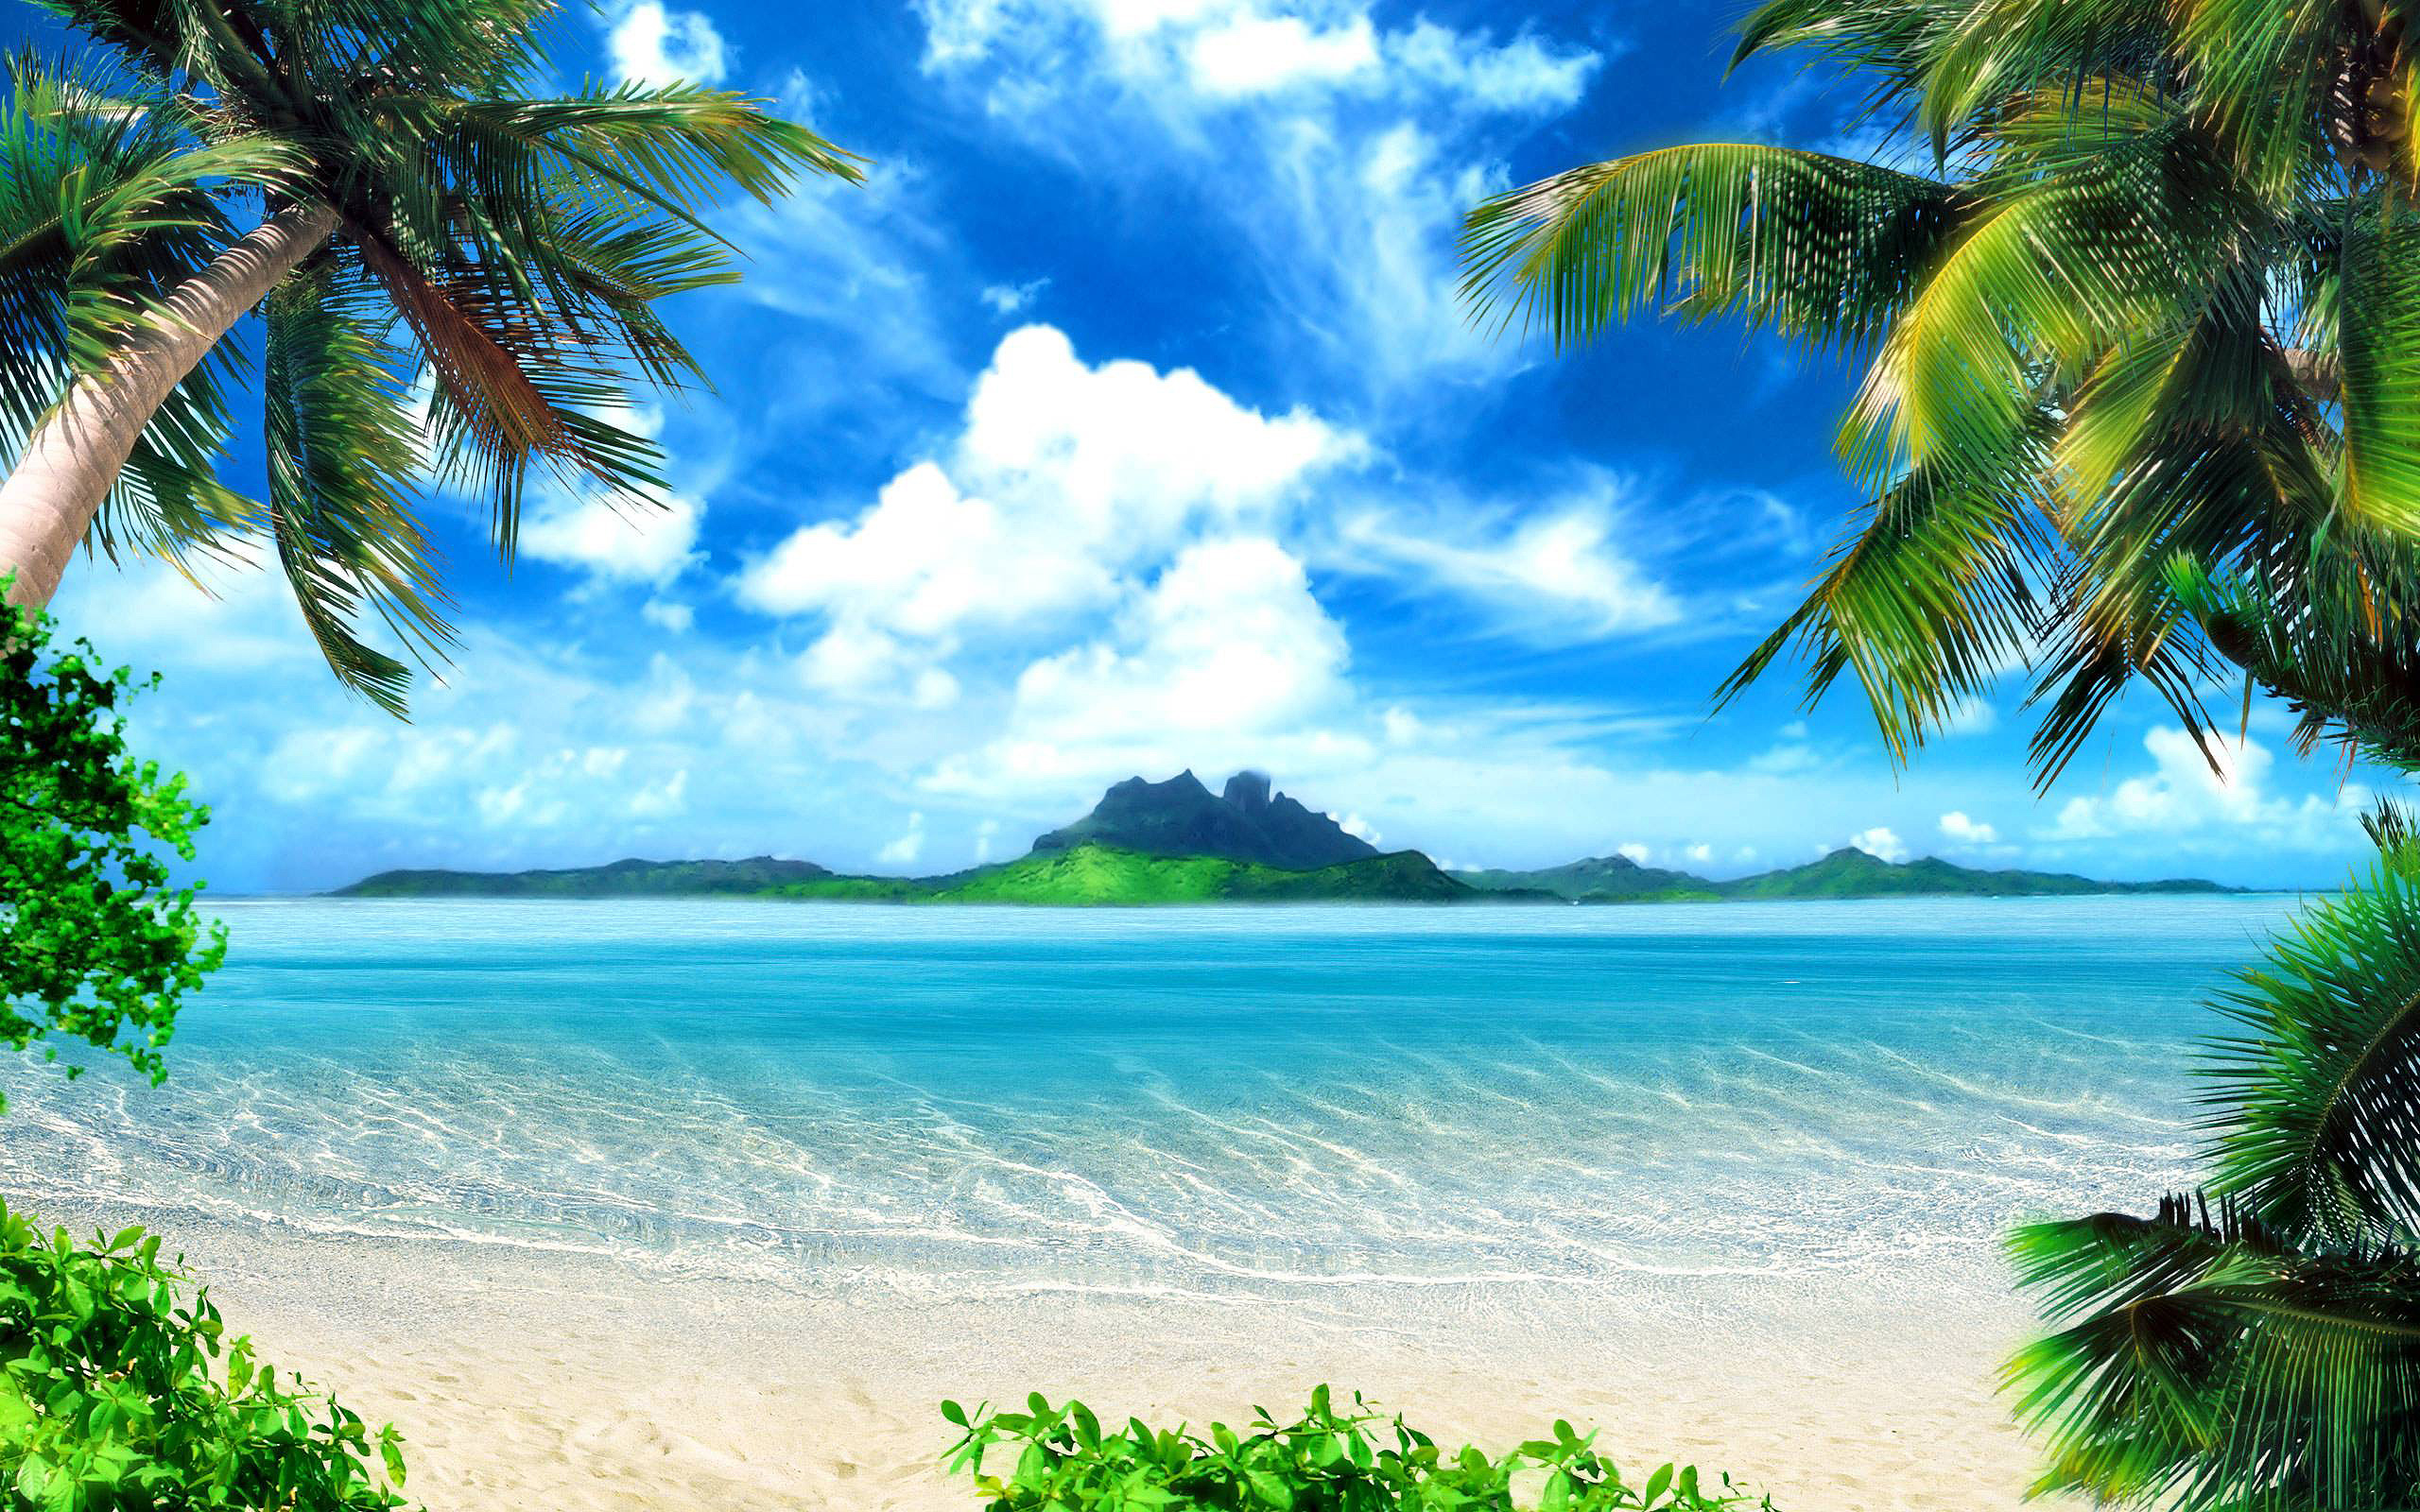 Tropical Beach Wallpaper wallpaper Tropical Beach Wallpaper hd 2560x1600